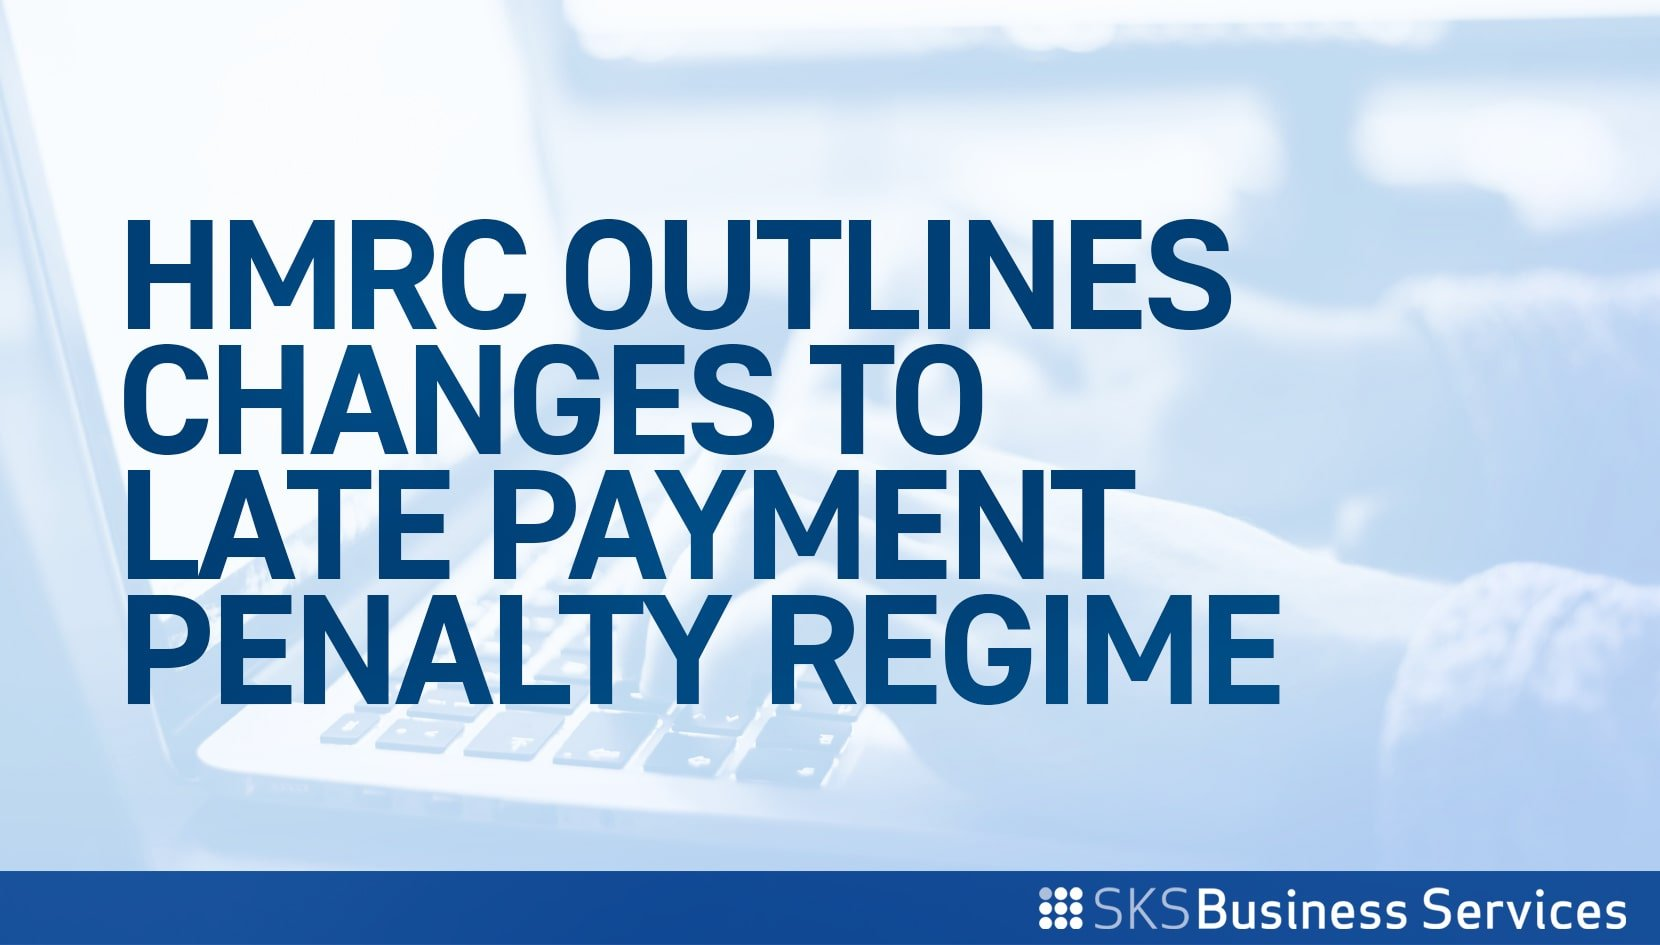 You are currently viewing HMRC Outlines Changes to Late Payment Penalty Regime